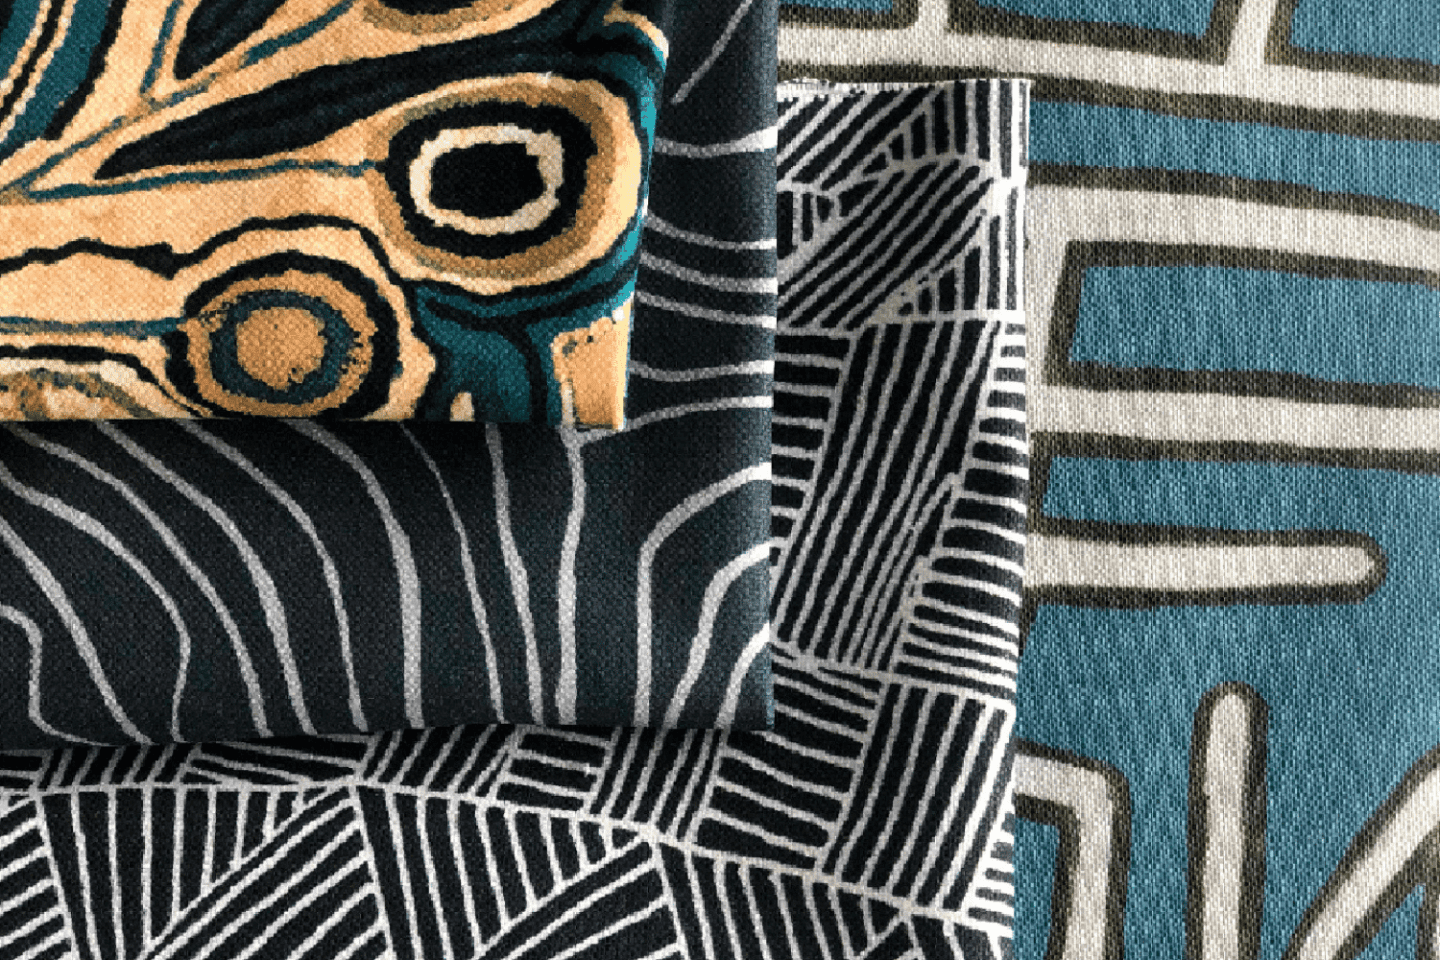 Jimmy Pike furnishing textiles